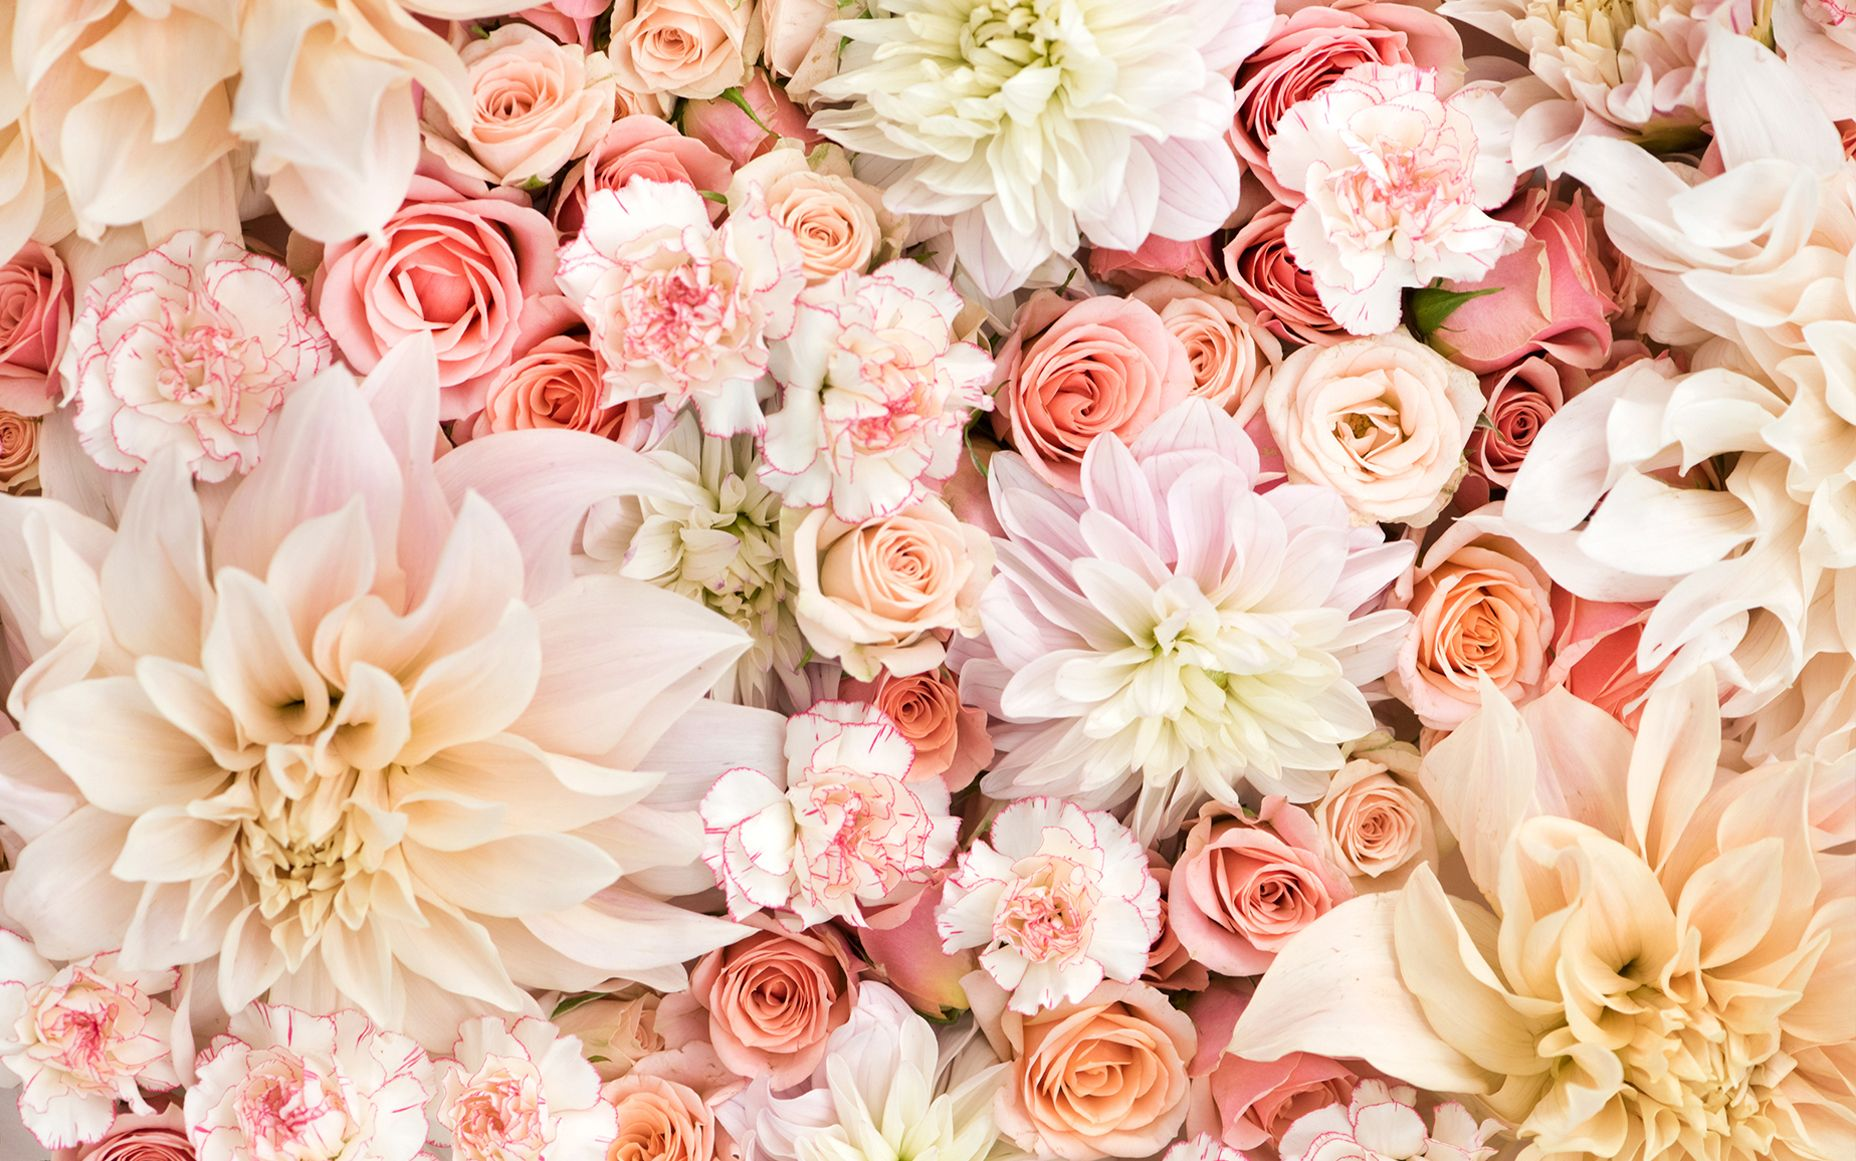 Flowers Floral Flowers wallpapers (Desktop, Phone, Tablet) - Awesome ...